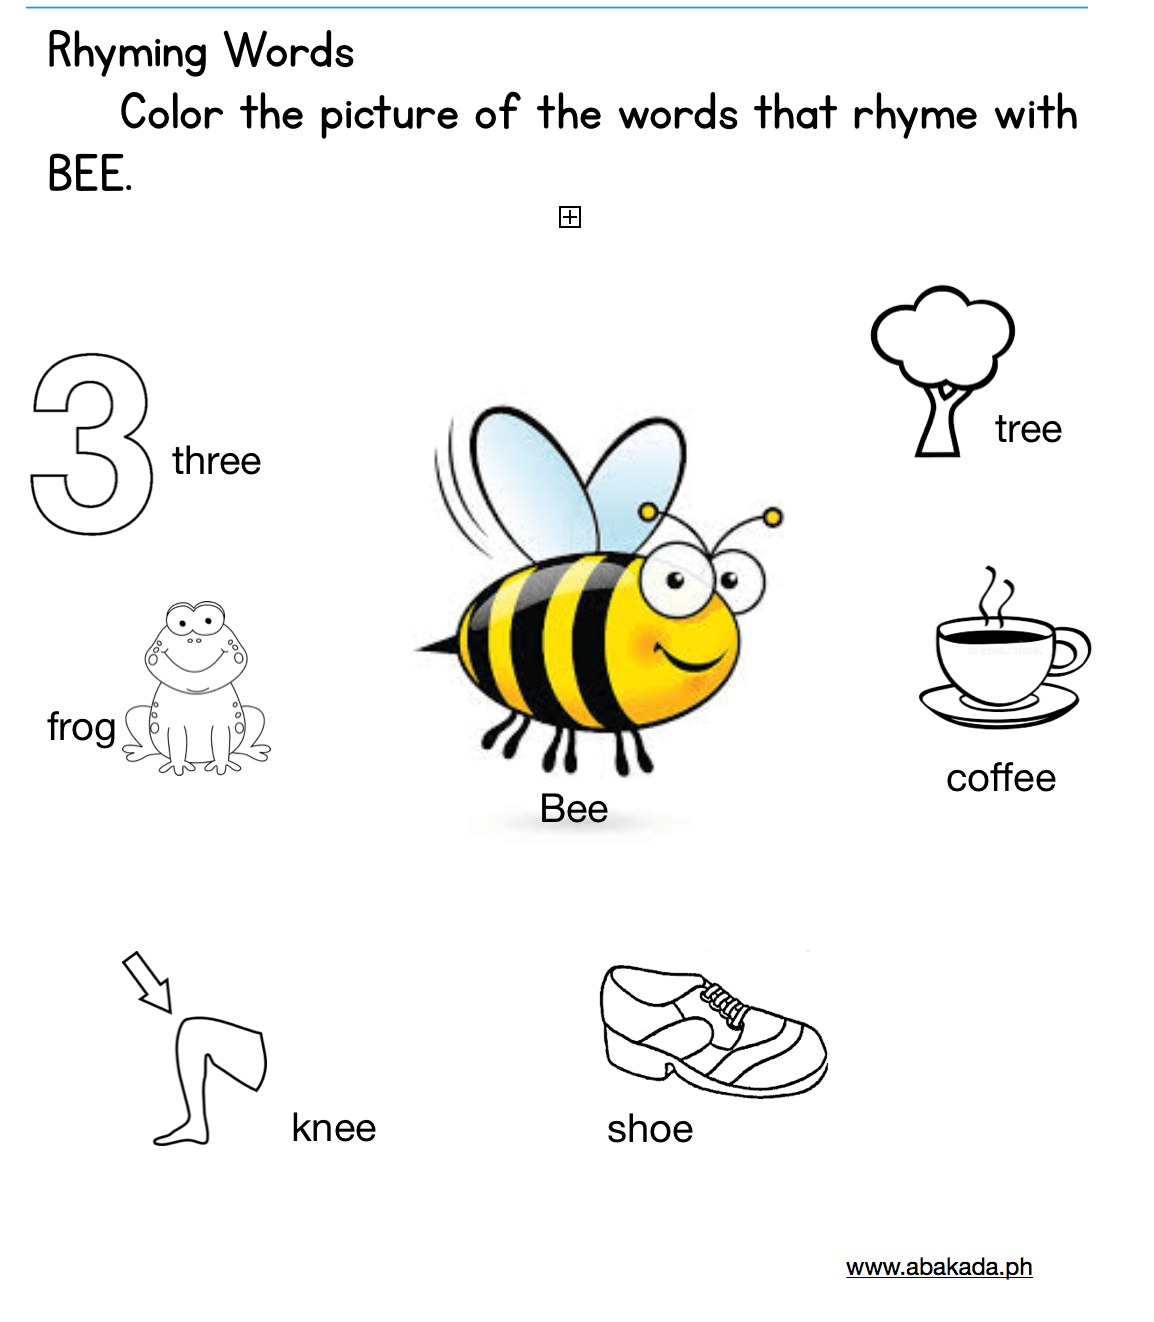 Rhyming Words Worksheets 1st Grade And Kindergarten